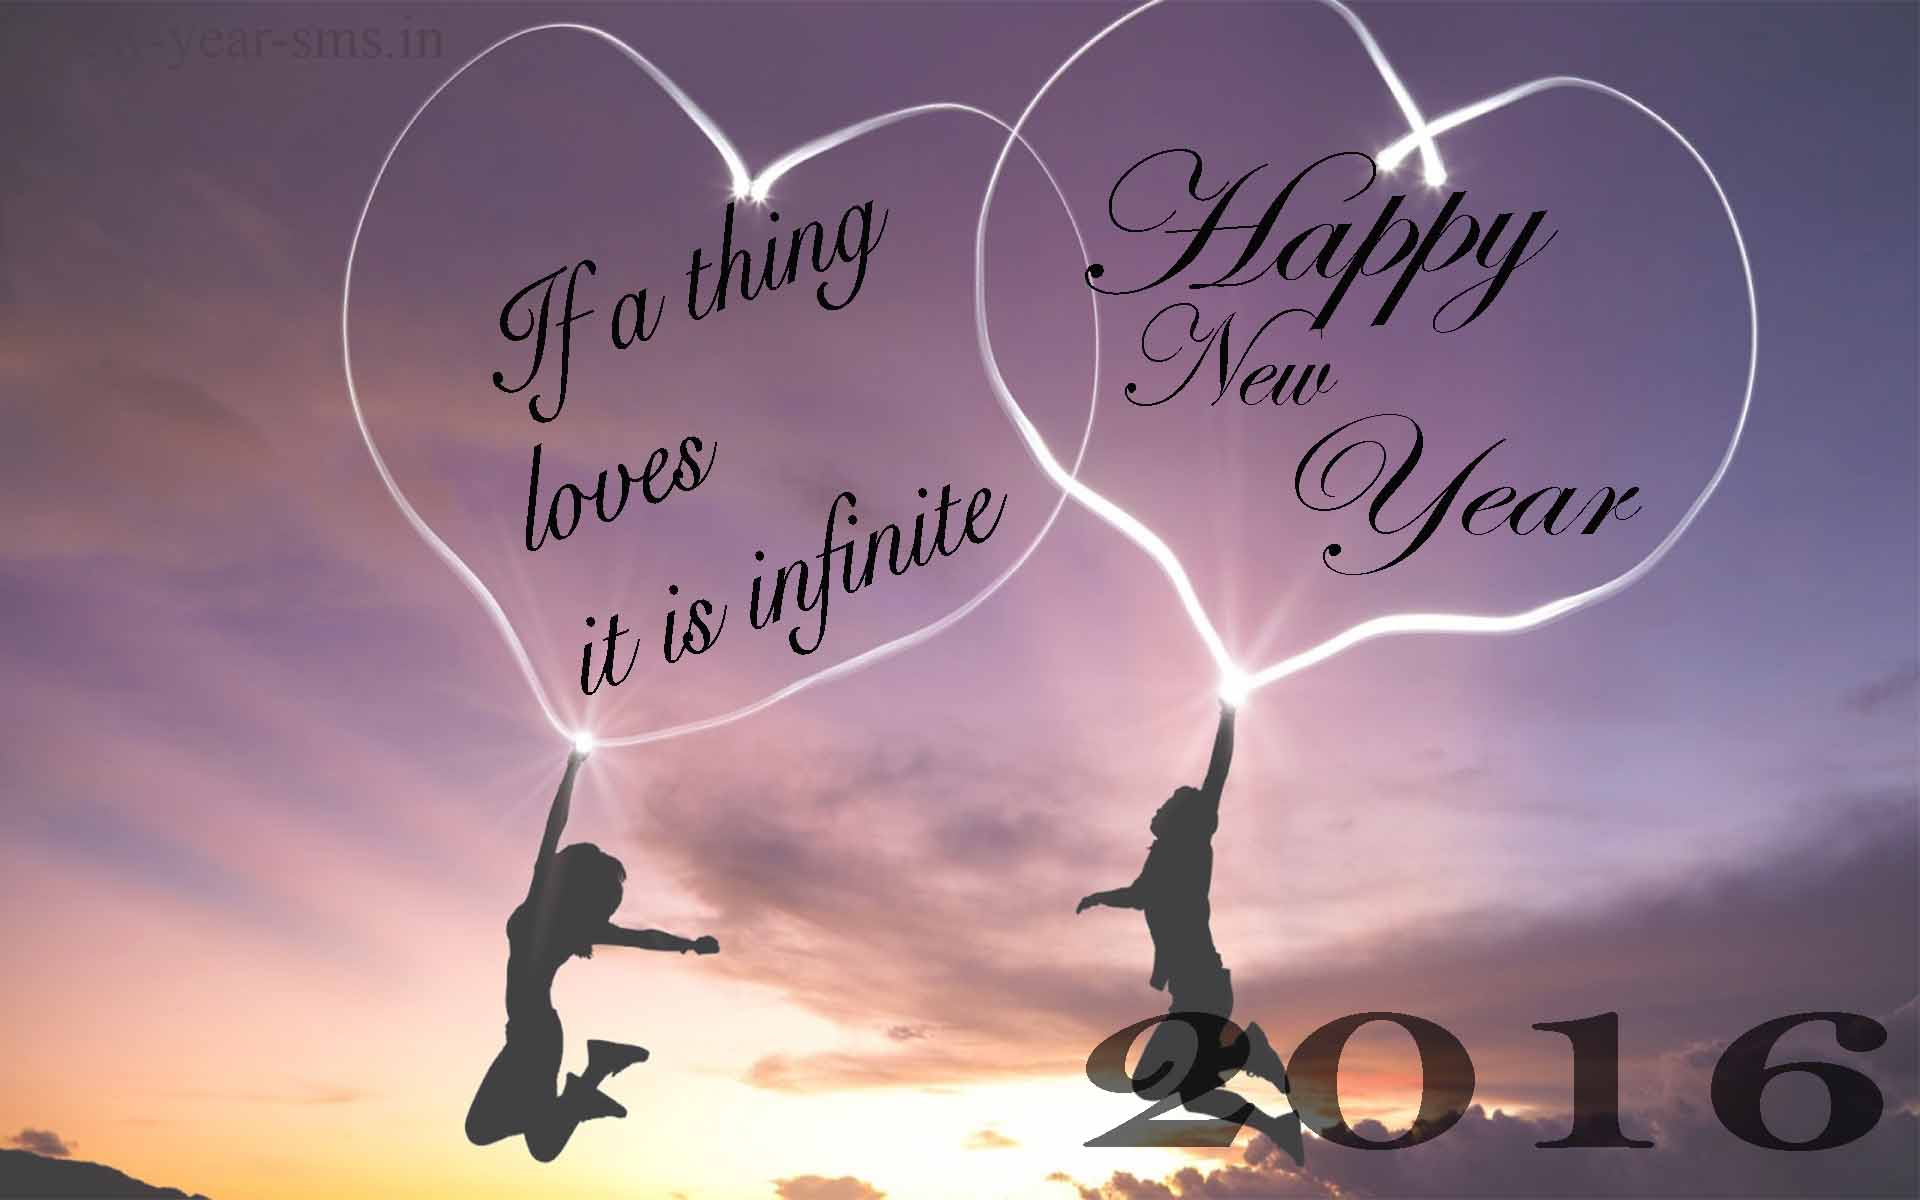 Love Wallpapers New 2016 : New Wallpapers 2016 Love - Wallpaper cave